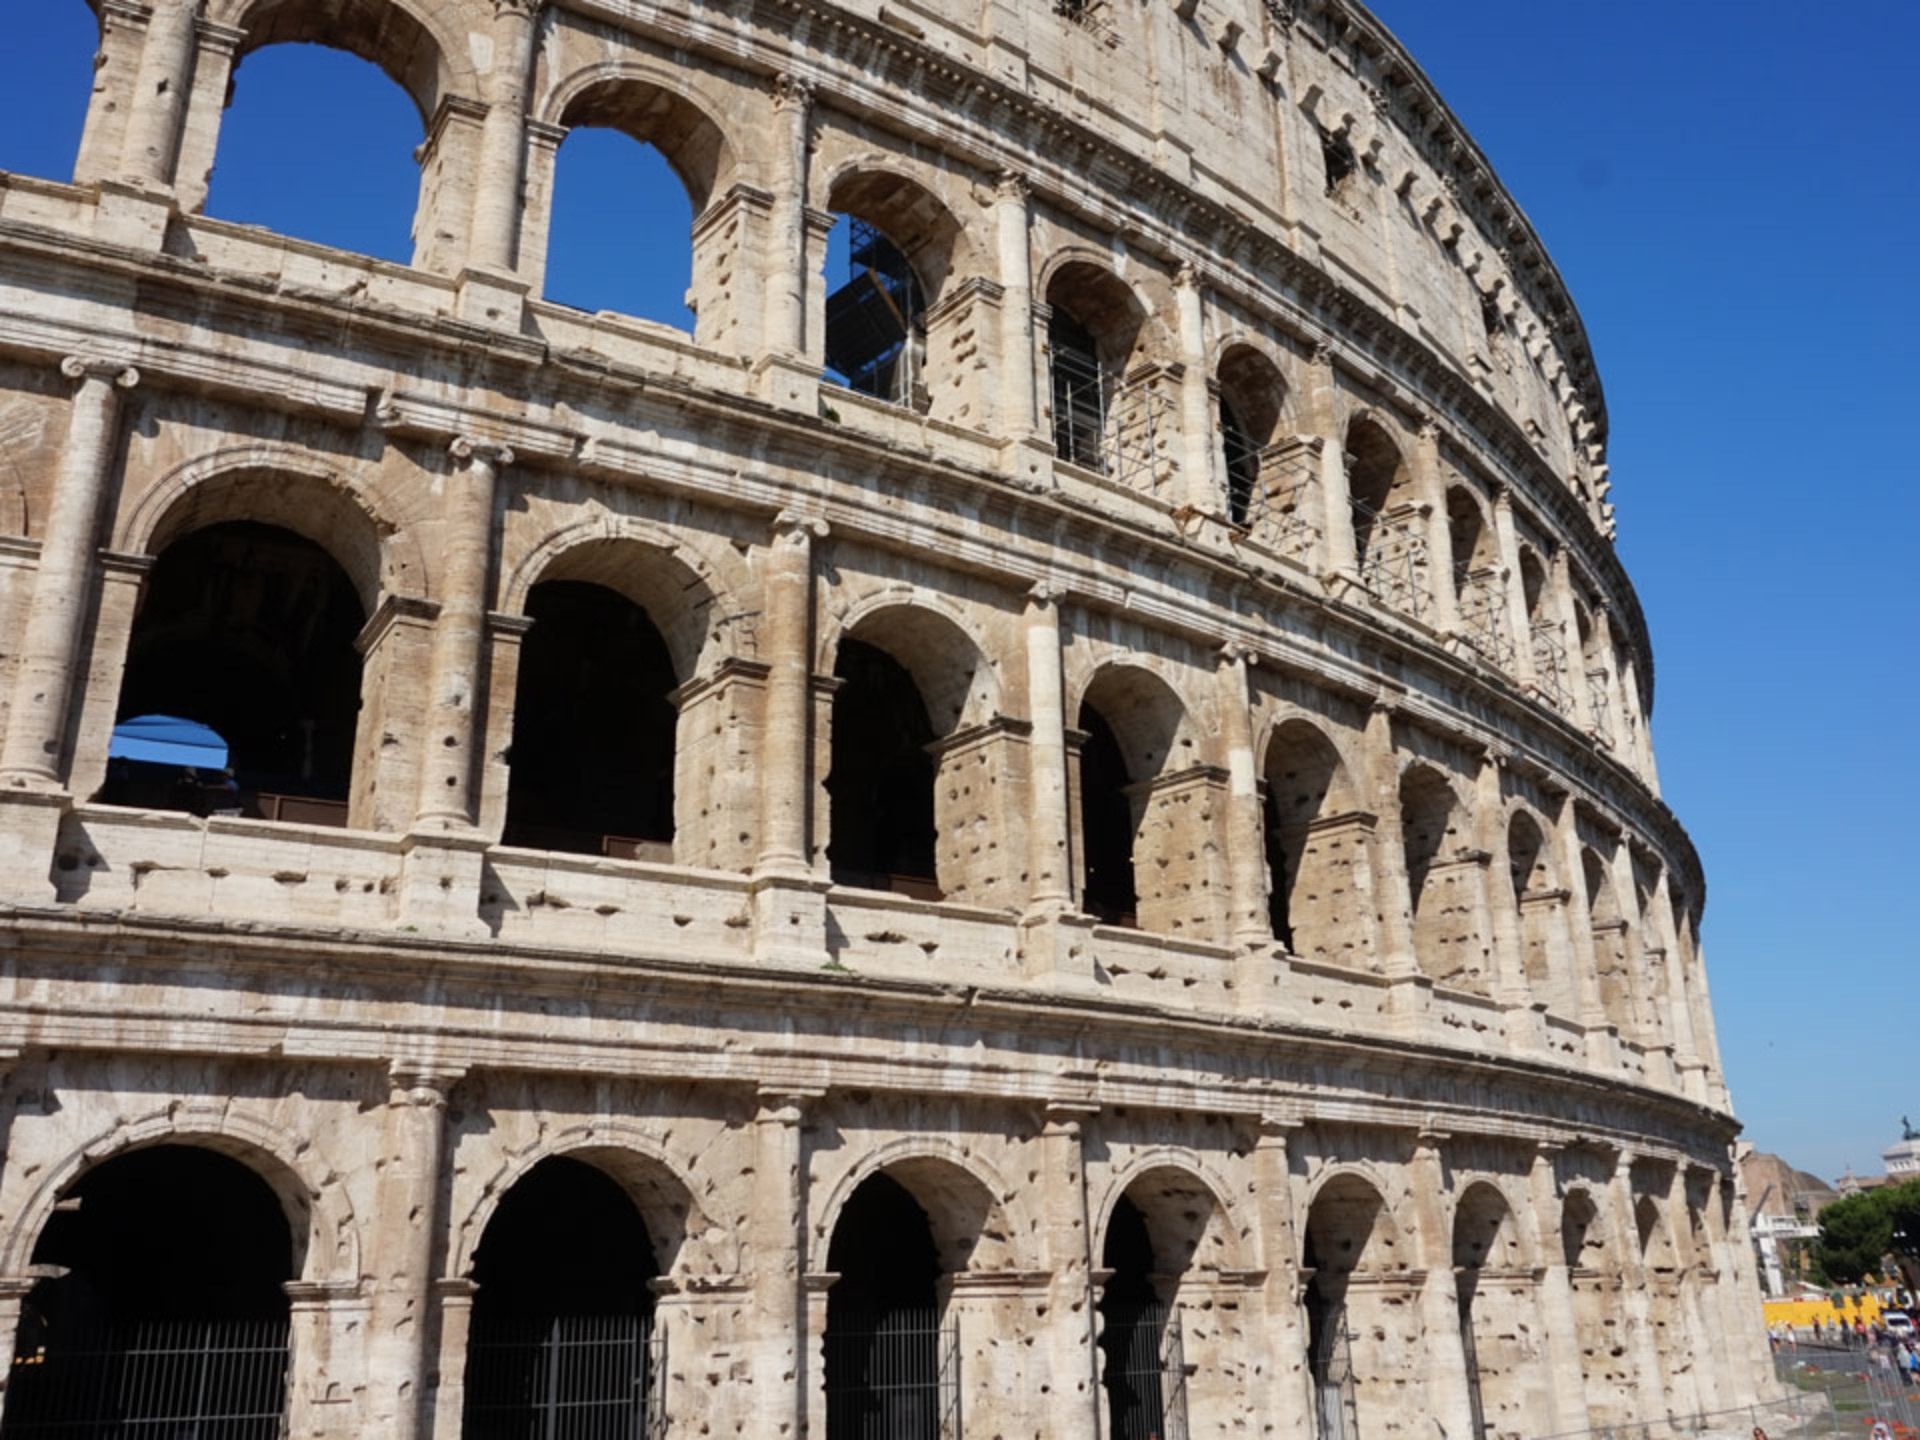 Ancient-Rome-Coliseum_Italy-Tour-With-Theresa_01